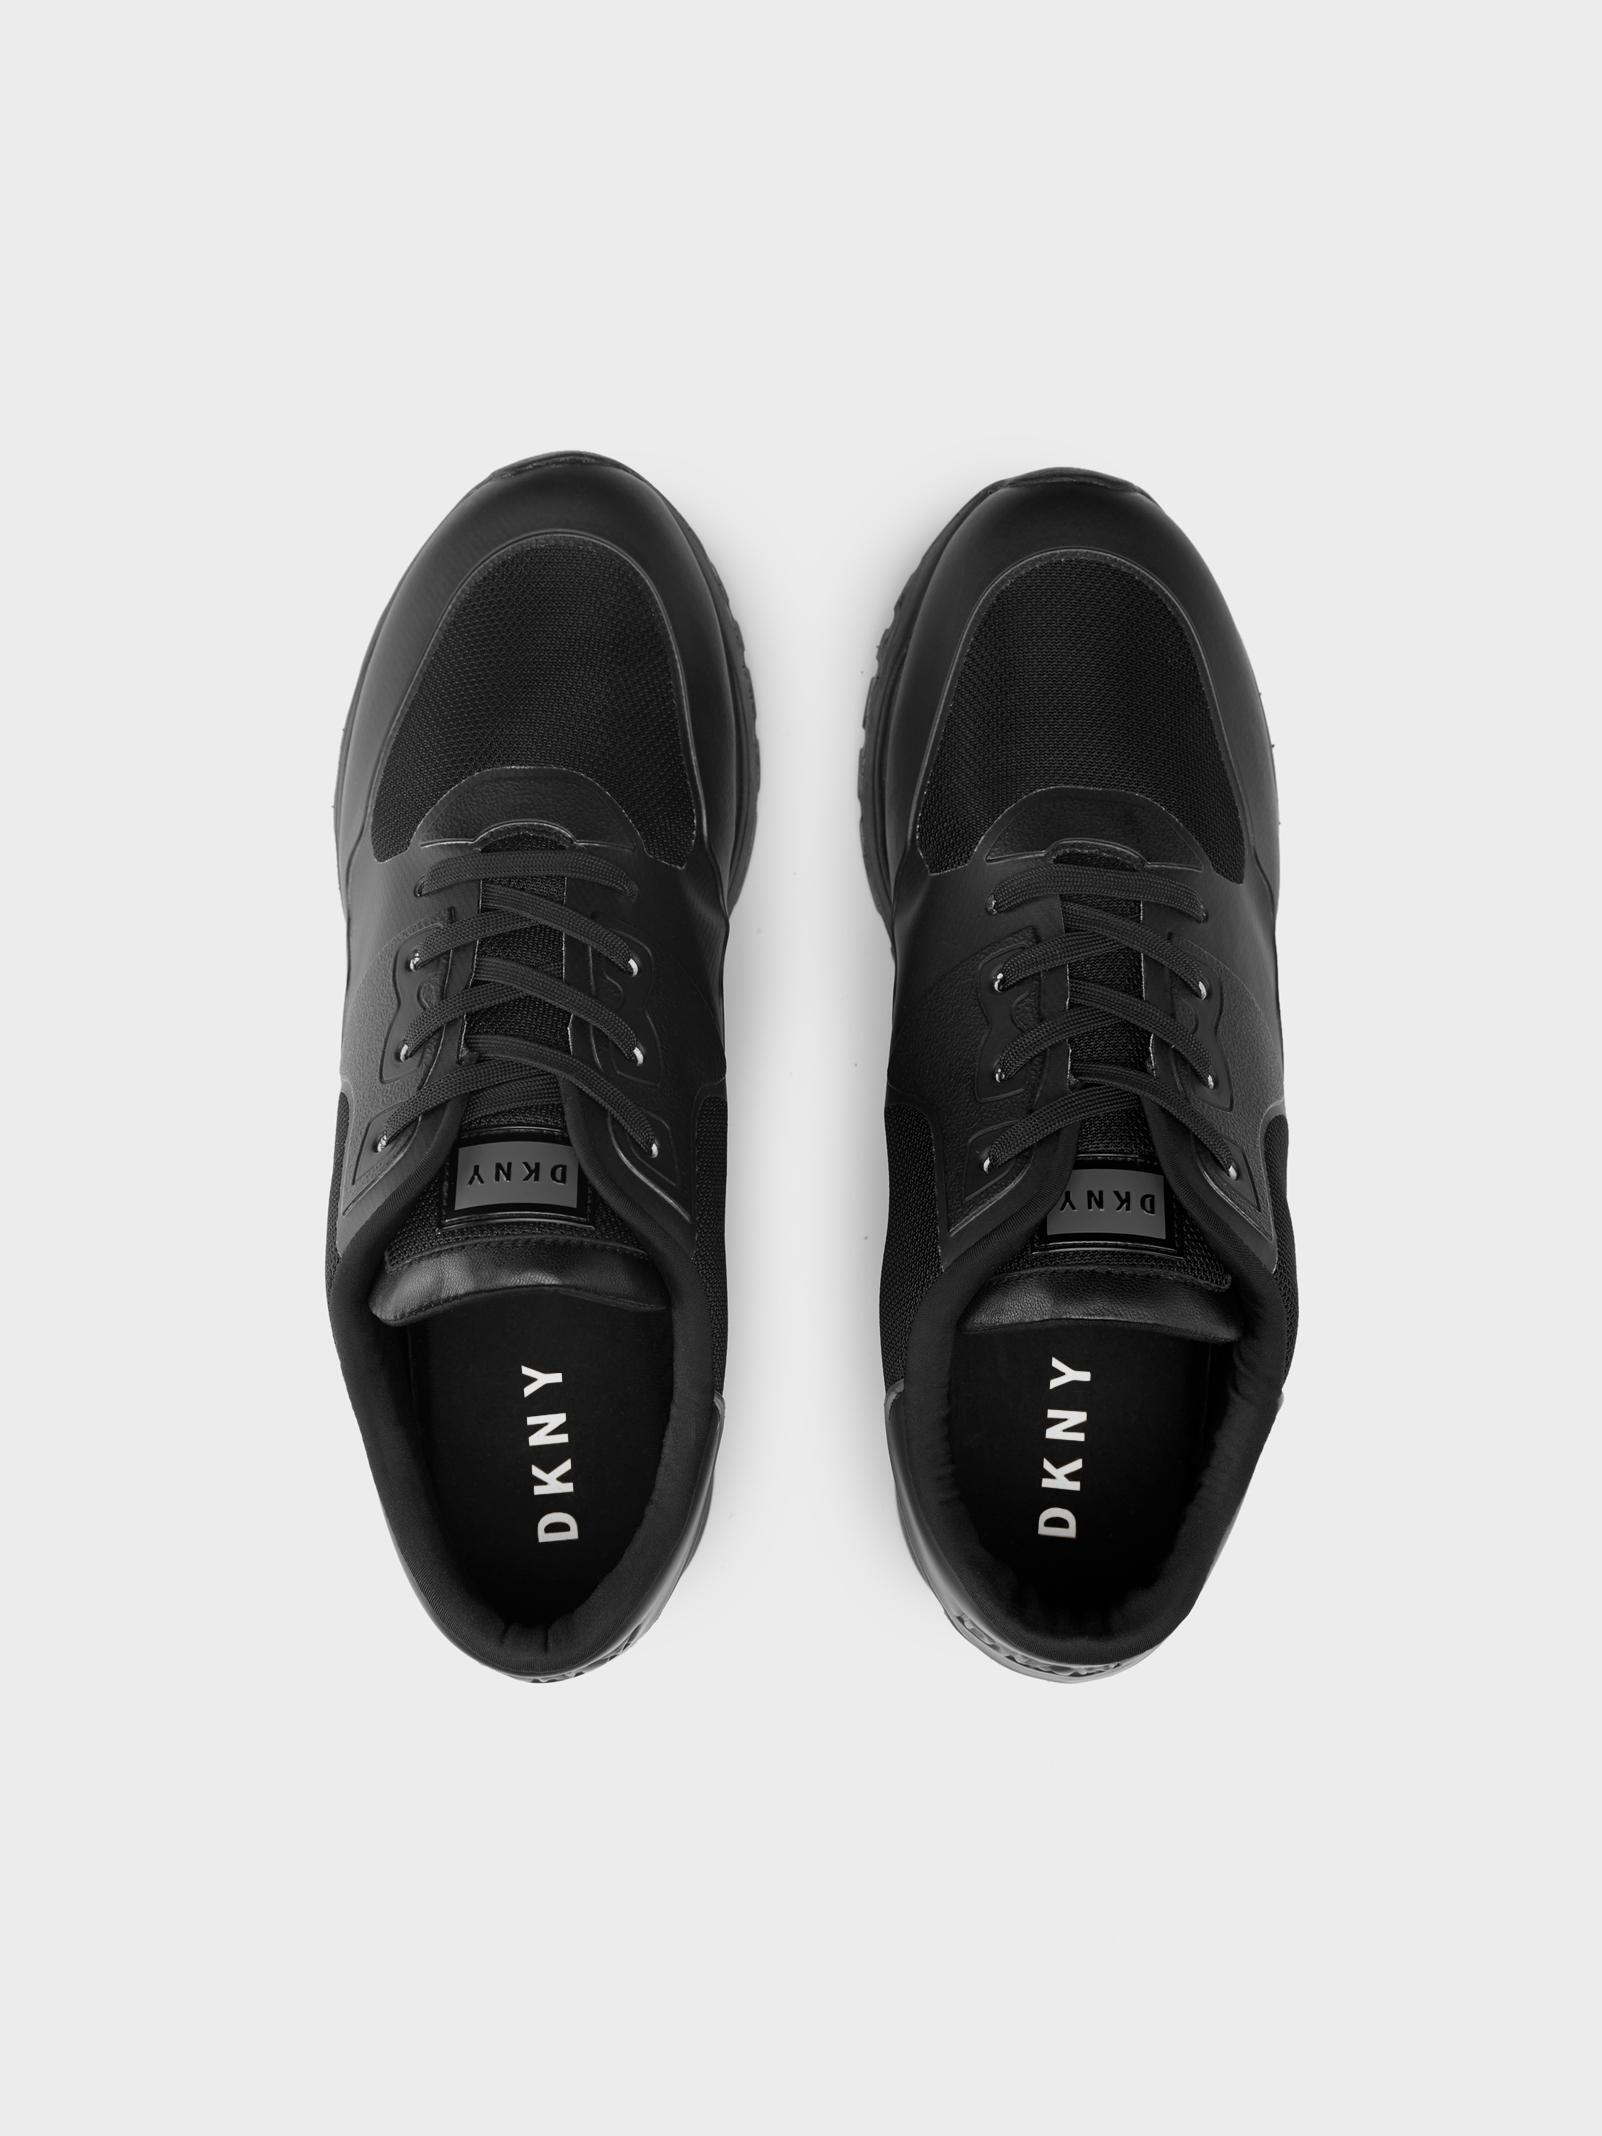 DKNY Synthetic Jennie Lace Up Sneaker